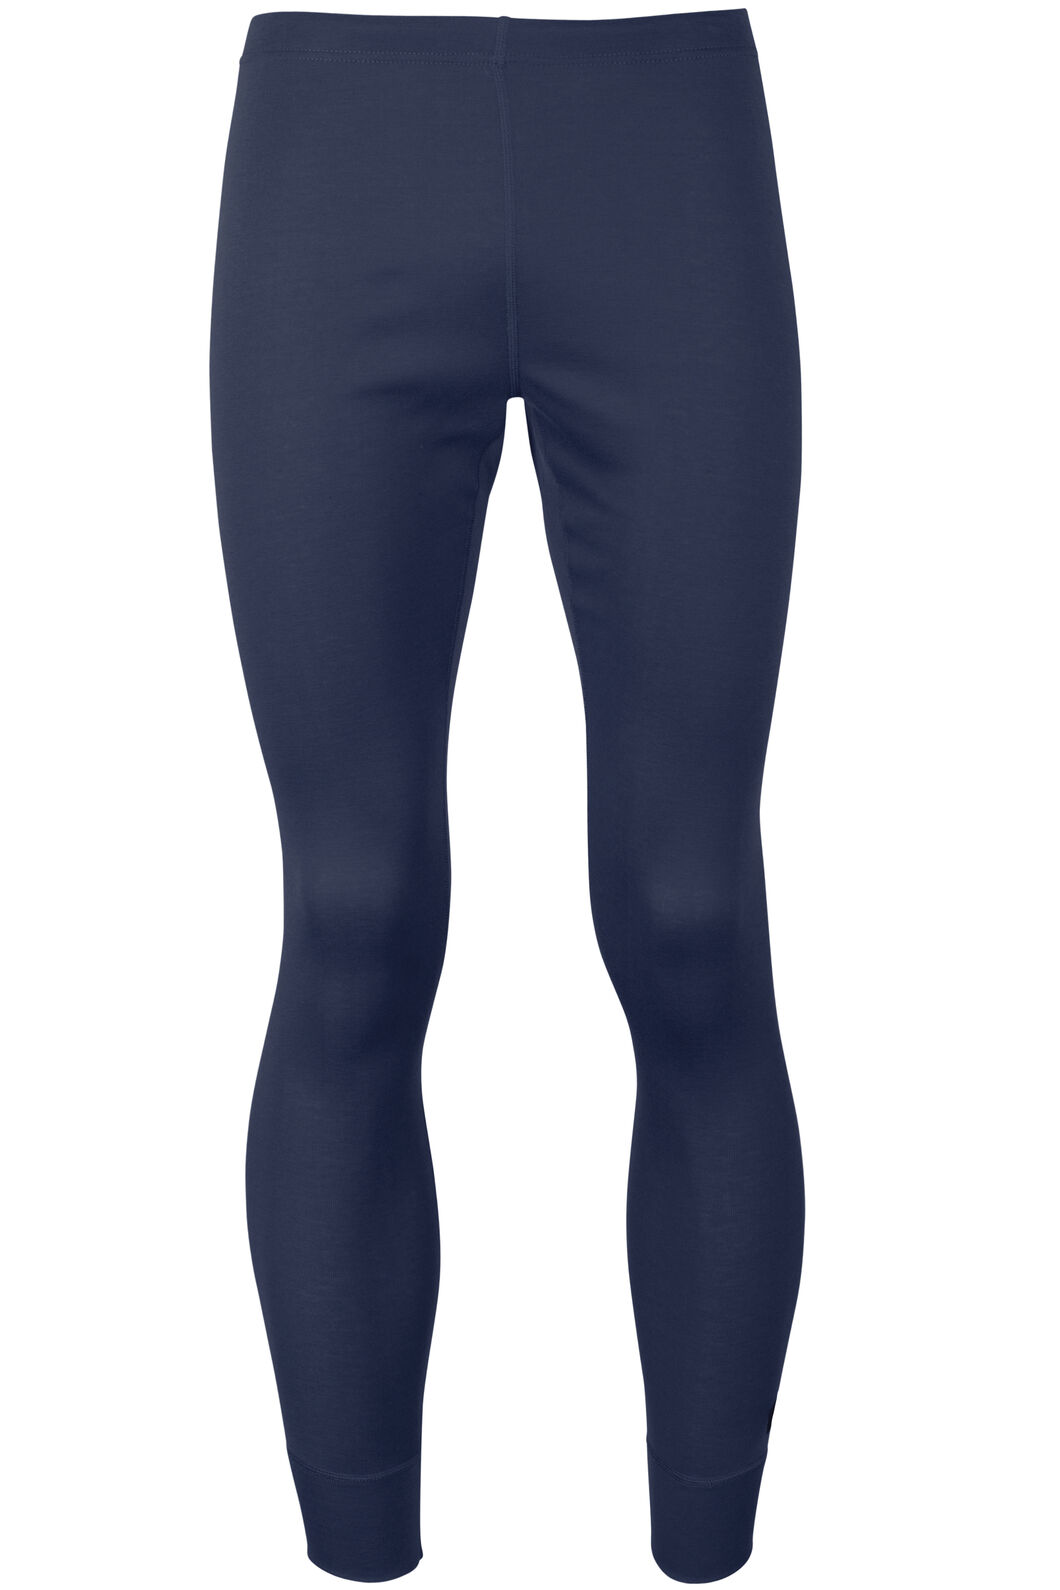 Macpac Geothermal Long Johns - Unisex, Black Iris, hi-res